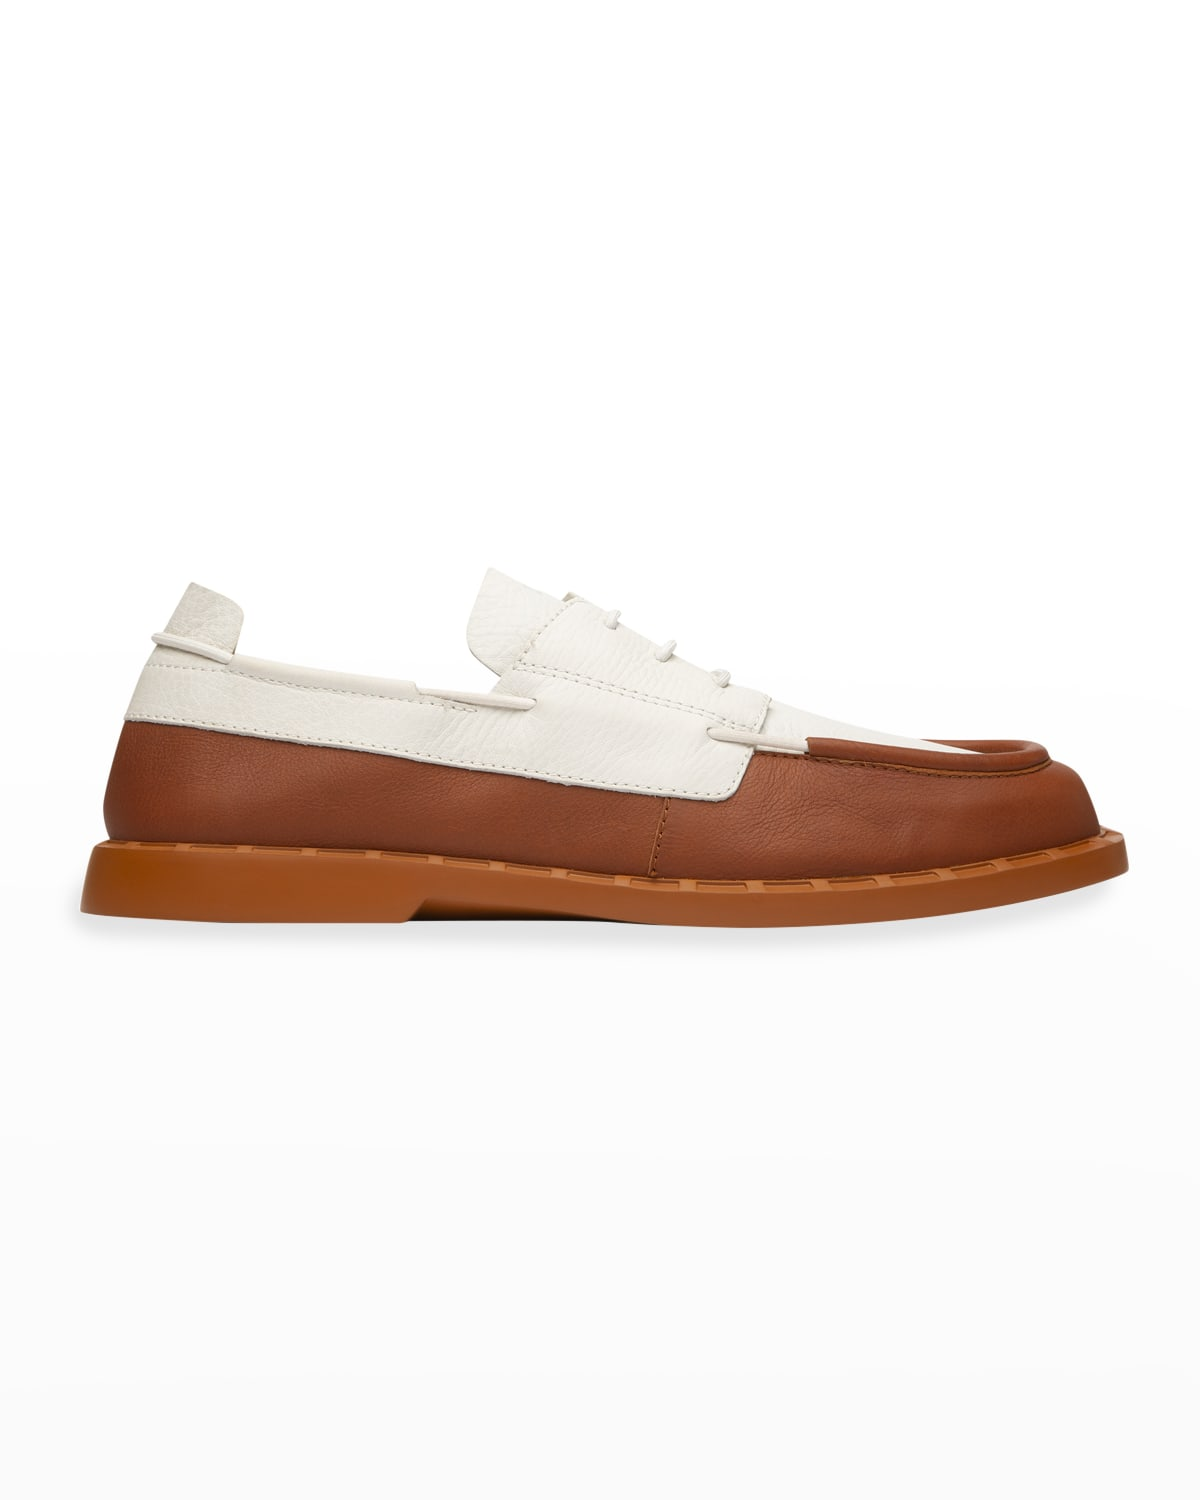 Men's Judd Leather Boat Shoes